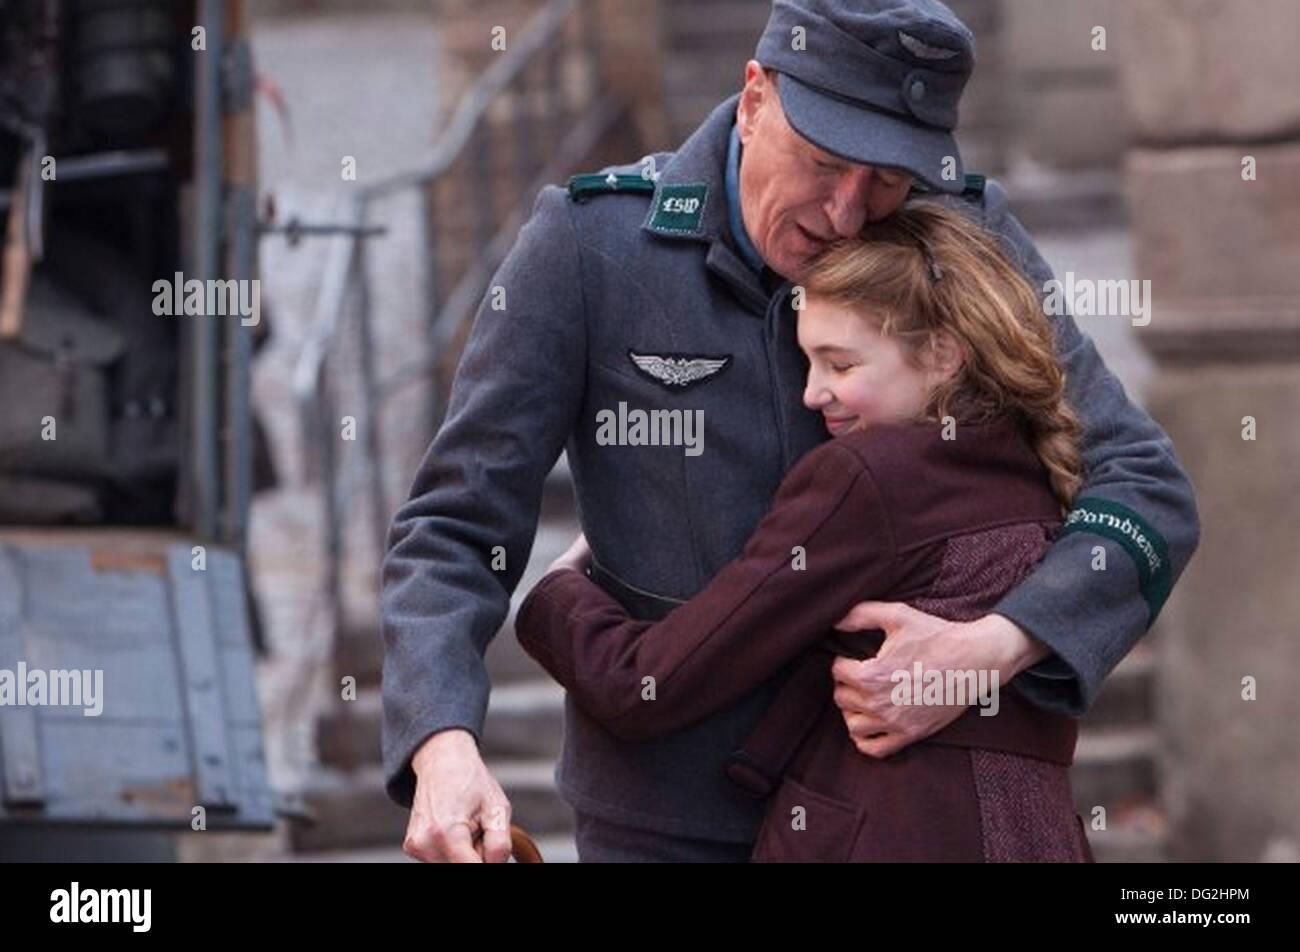 THE BOOK THIEF 2013 Twentieth Century Fox film with Geoffrey Rush and Sophie Nelisse - Stock Image